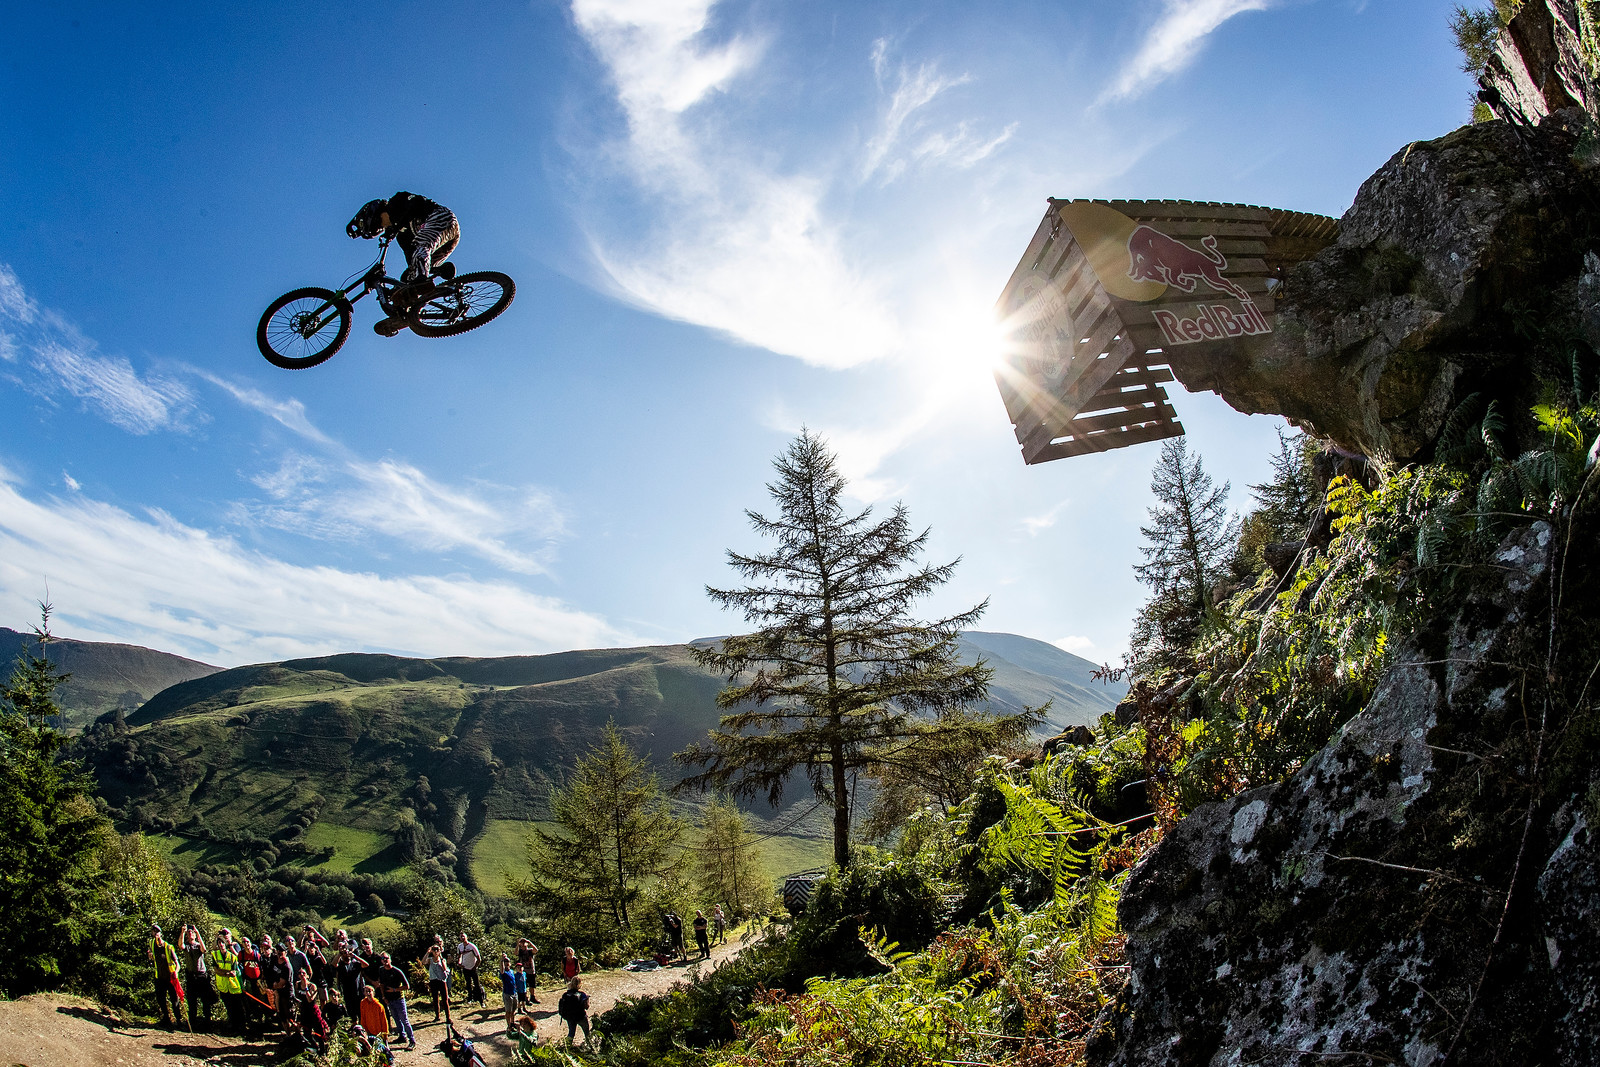 Kaos Seagrave - Red Bull Hardline in Photos - Mountain Biking Pictures - Vital MTB